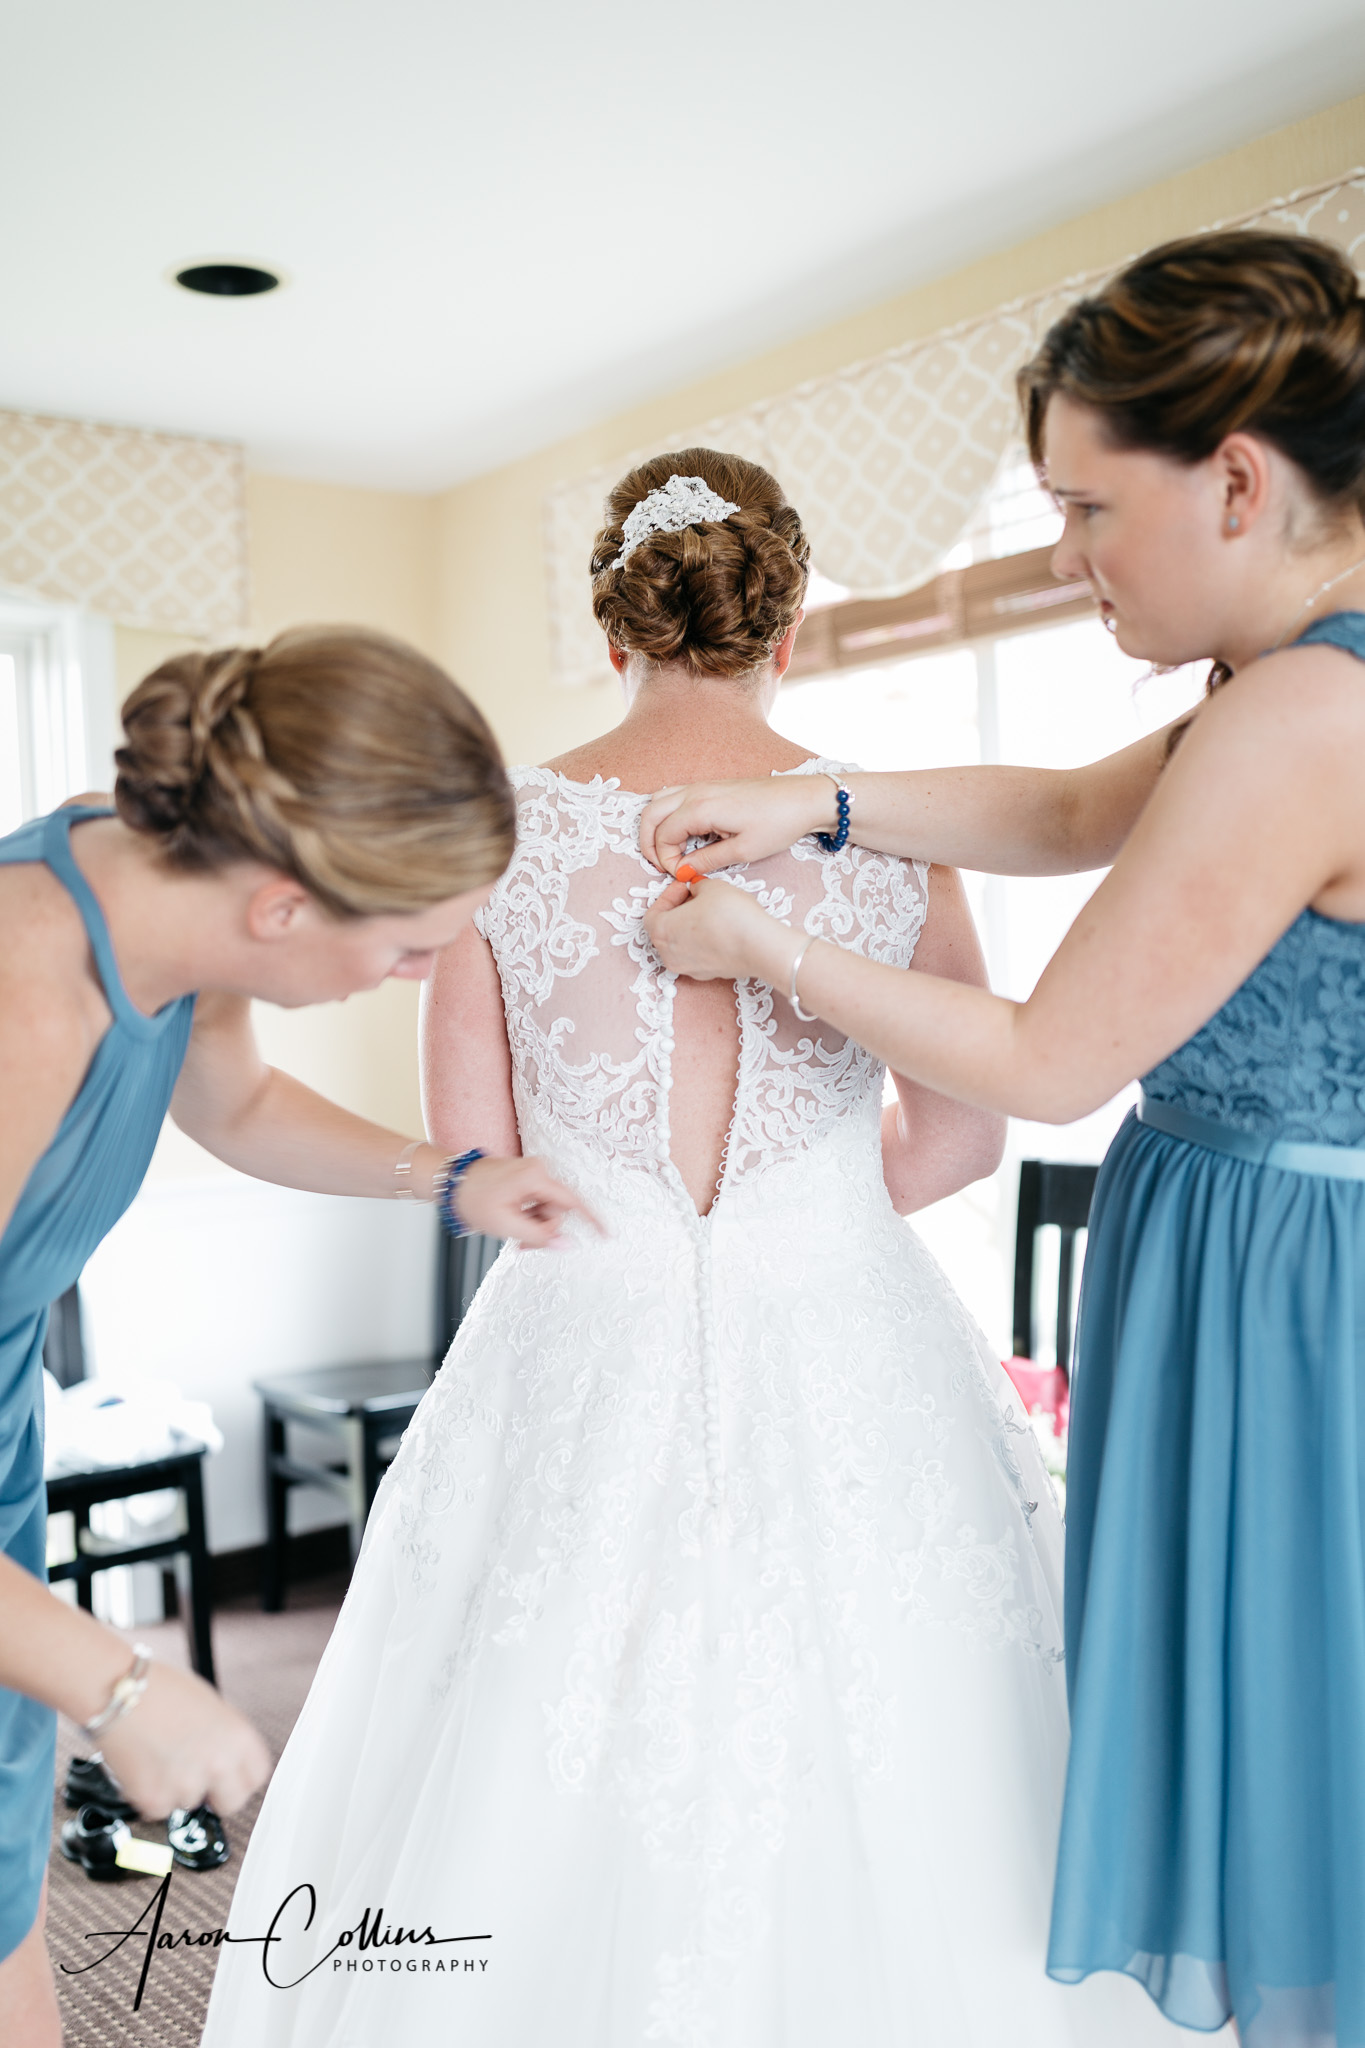 Bridesmaids helping the bride button up the back of her wedding dress.